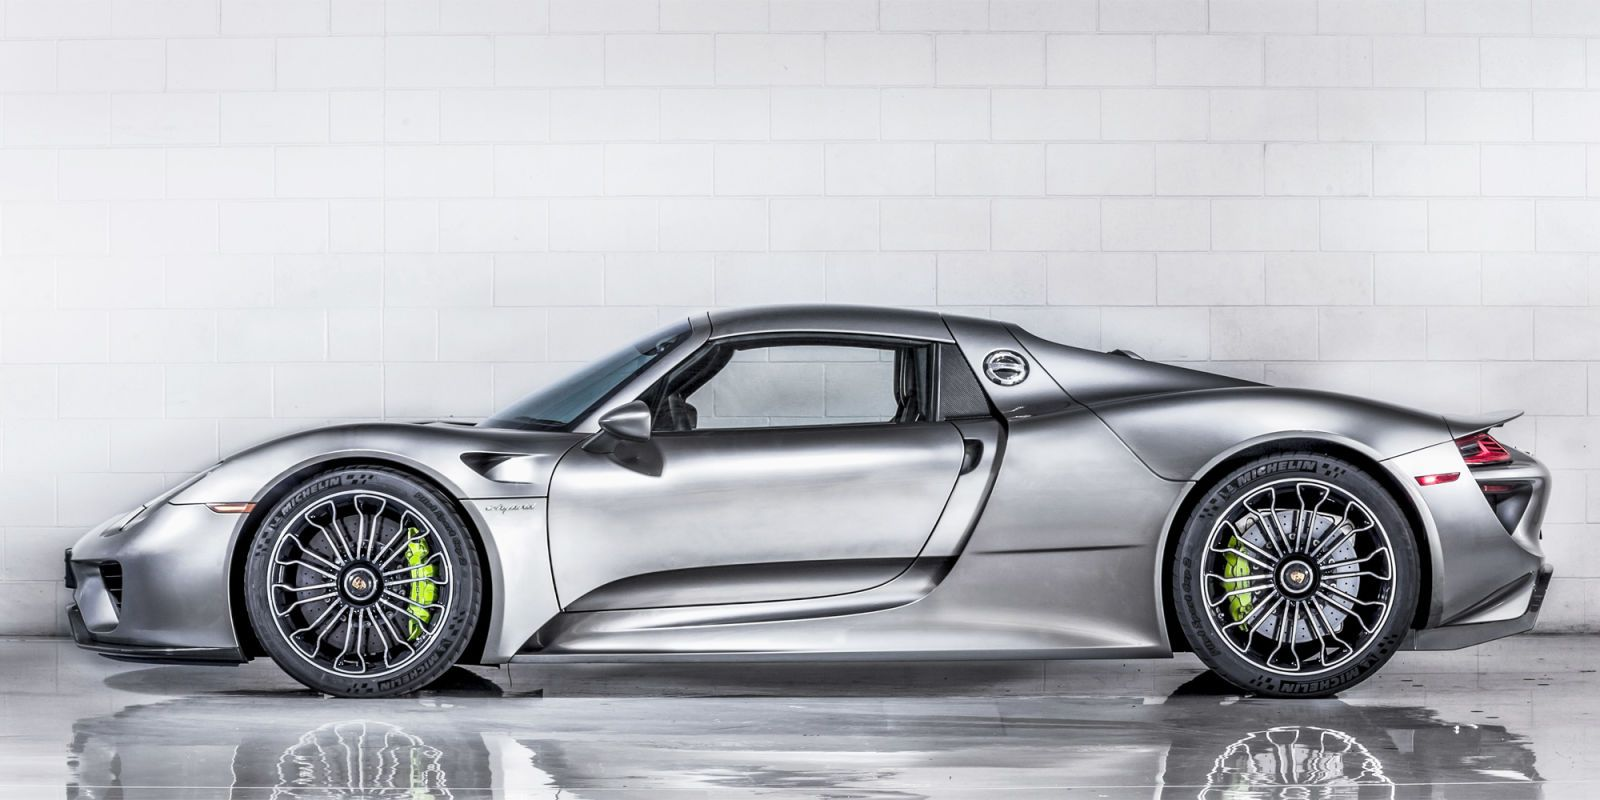 """PORSCHE 918 SPYDER """"The 918 is so different from any other Porsche being produced now. When you look at the details and their purpose and functionality, it's amazing how everything is blended. This is going to be a moment in Porsche's history that validates other thinking. It will motivate future design processes. The 918 will become an important car but also a timeless car.""""Photograph by Marc Urbano"""